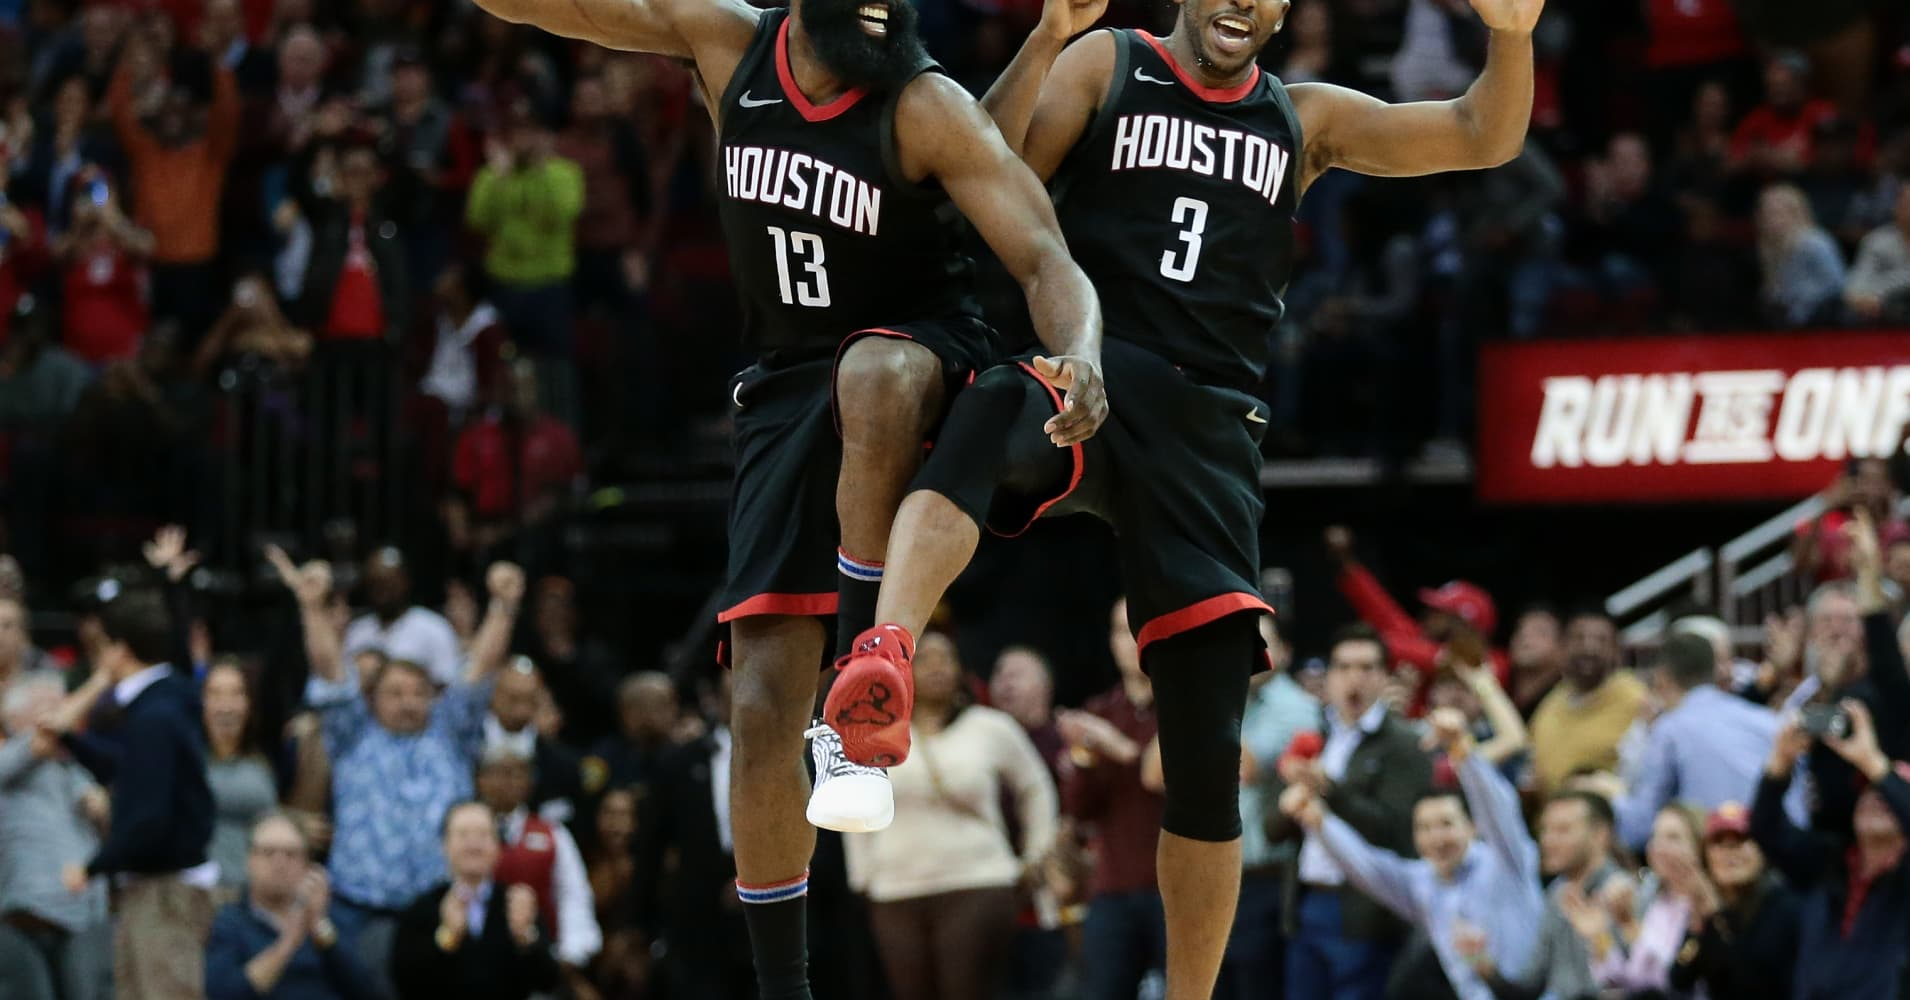 NBA booms amid formula of shorter games and 'rock star' players: Houston Rockets owner